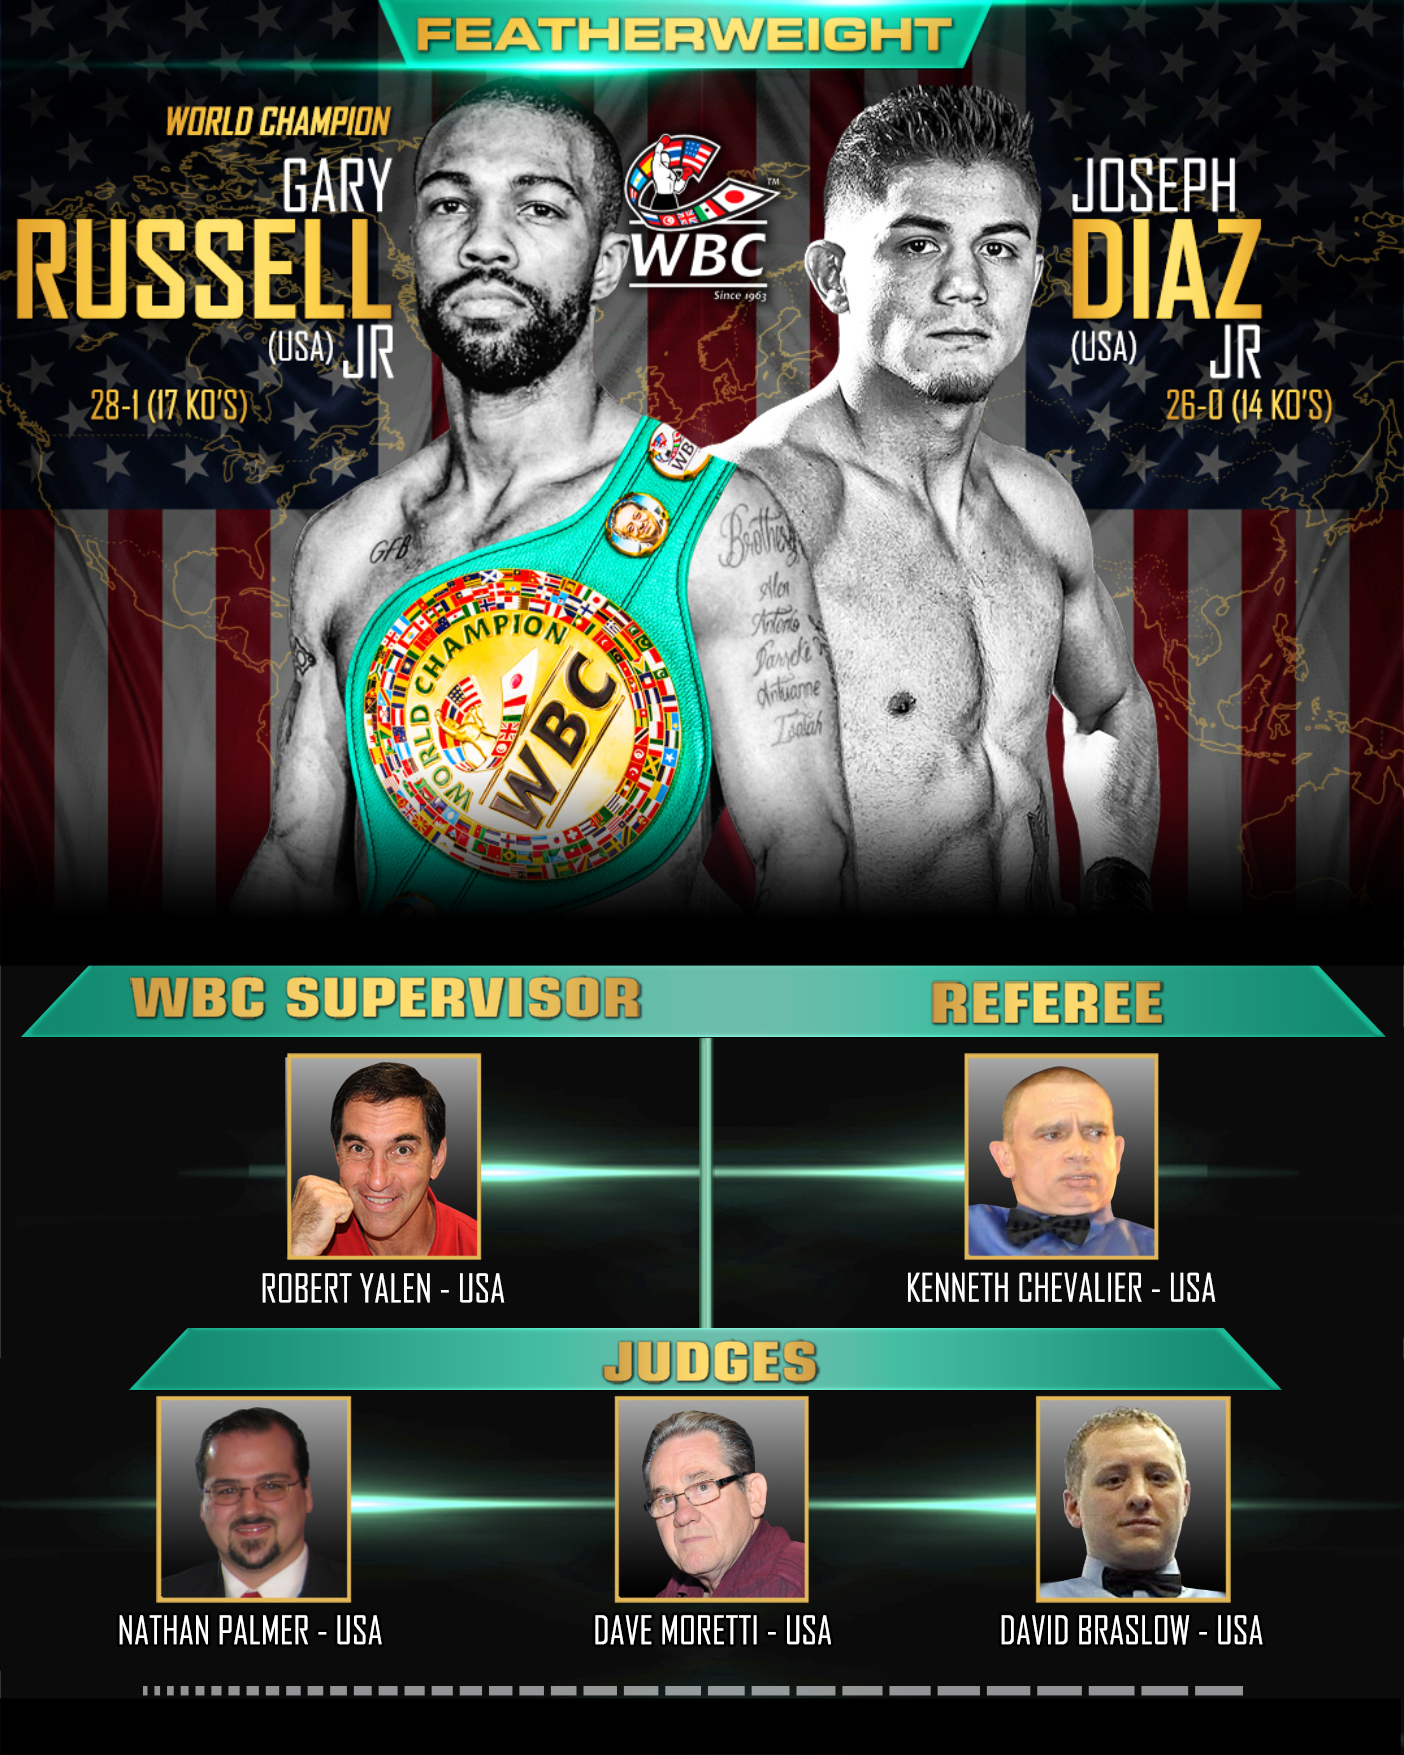 gary-russell-vs-joseph-diaz-19may2018